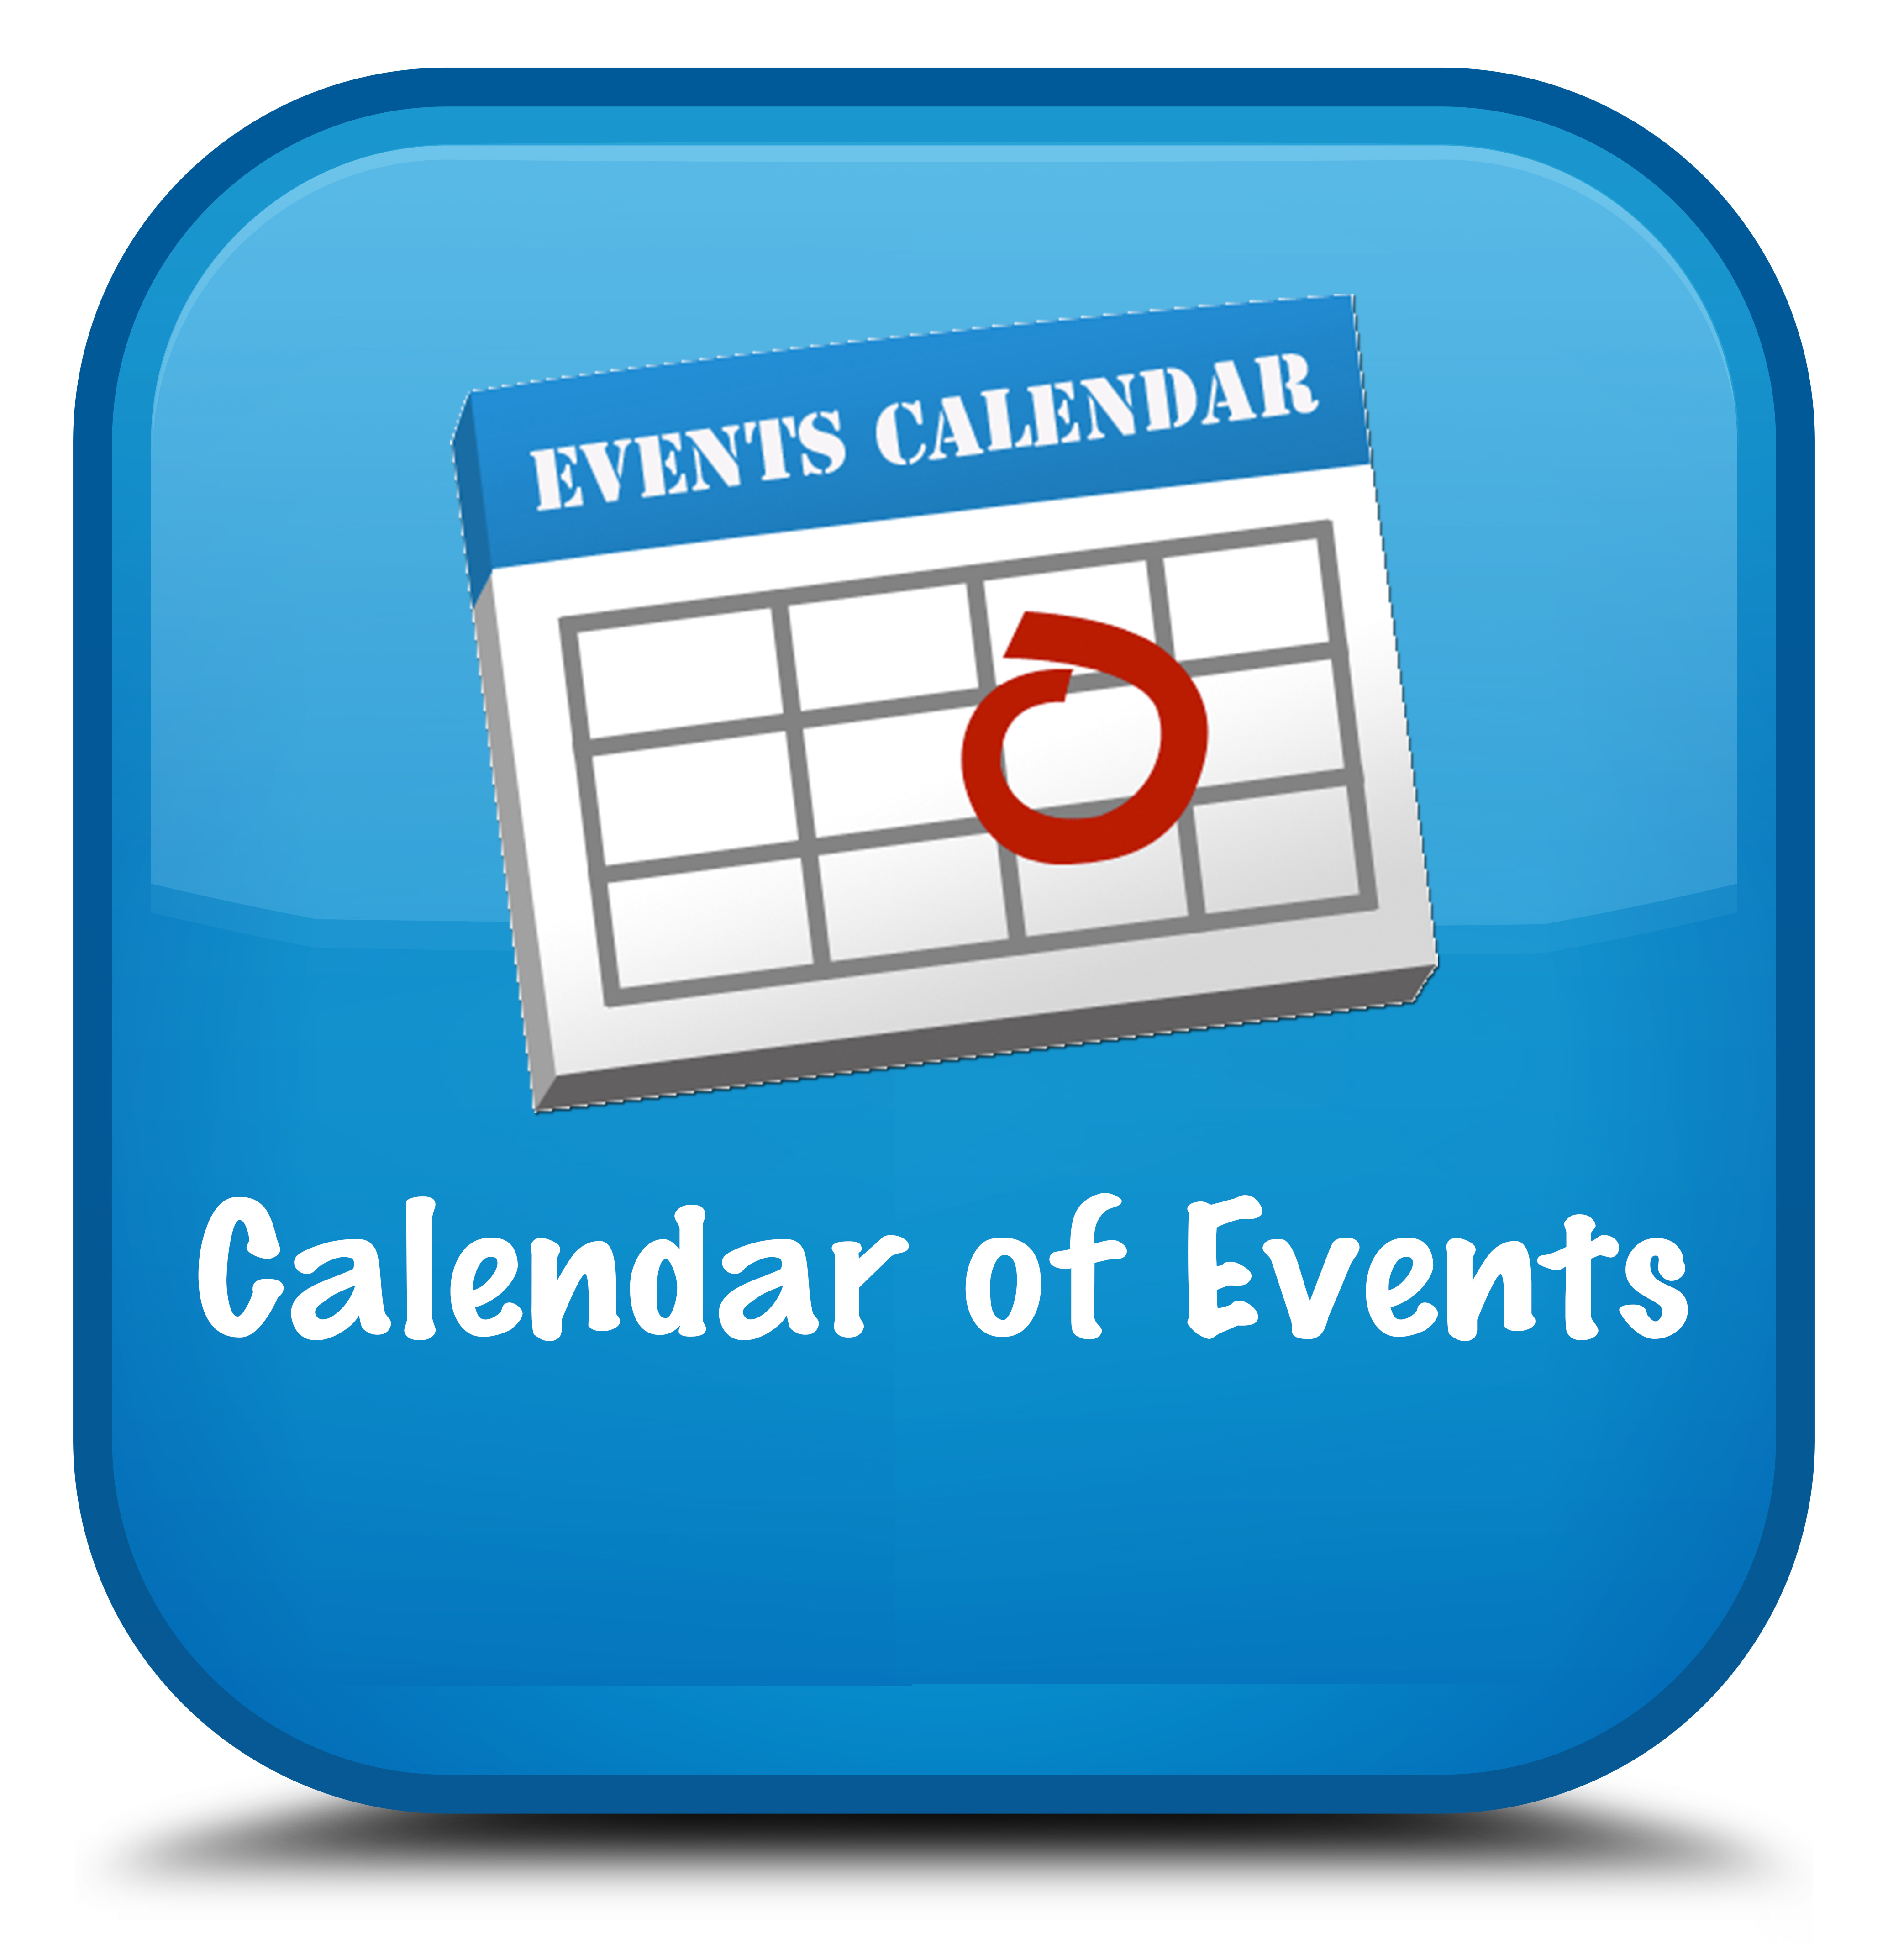 Calendar of events